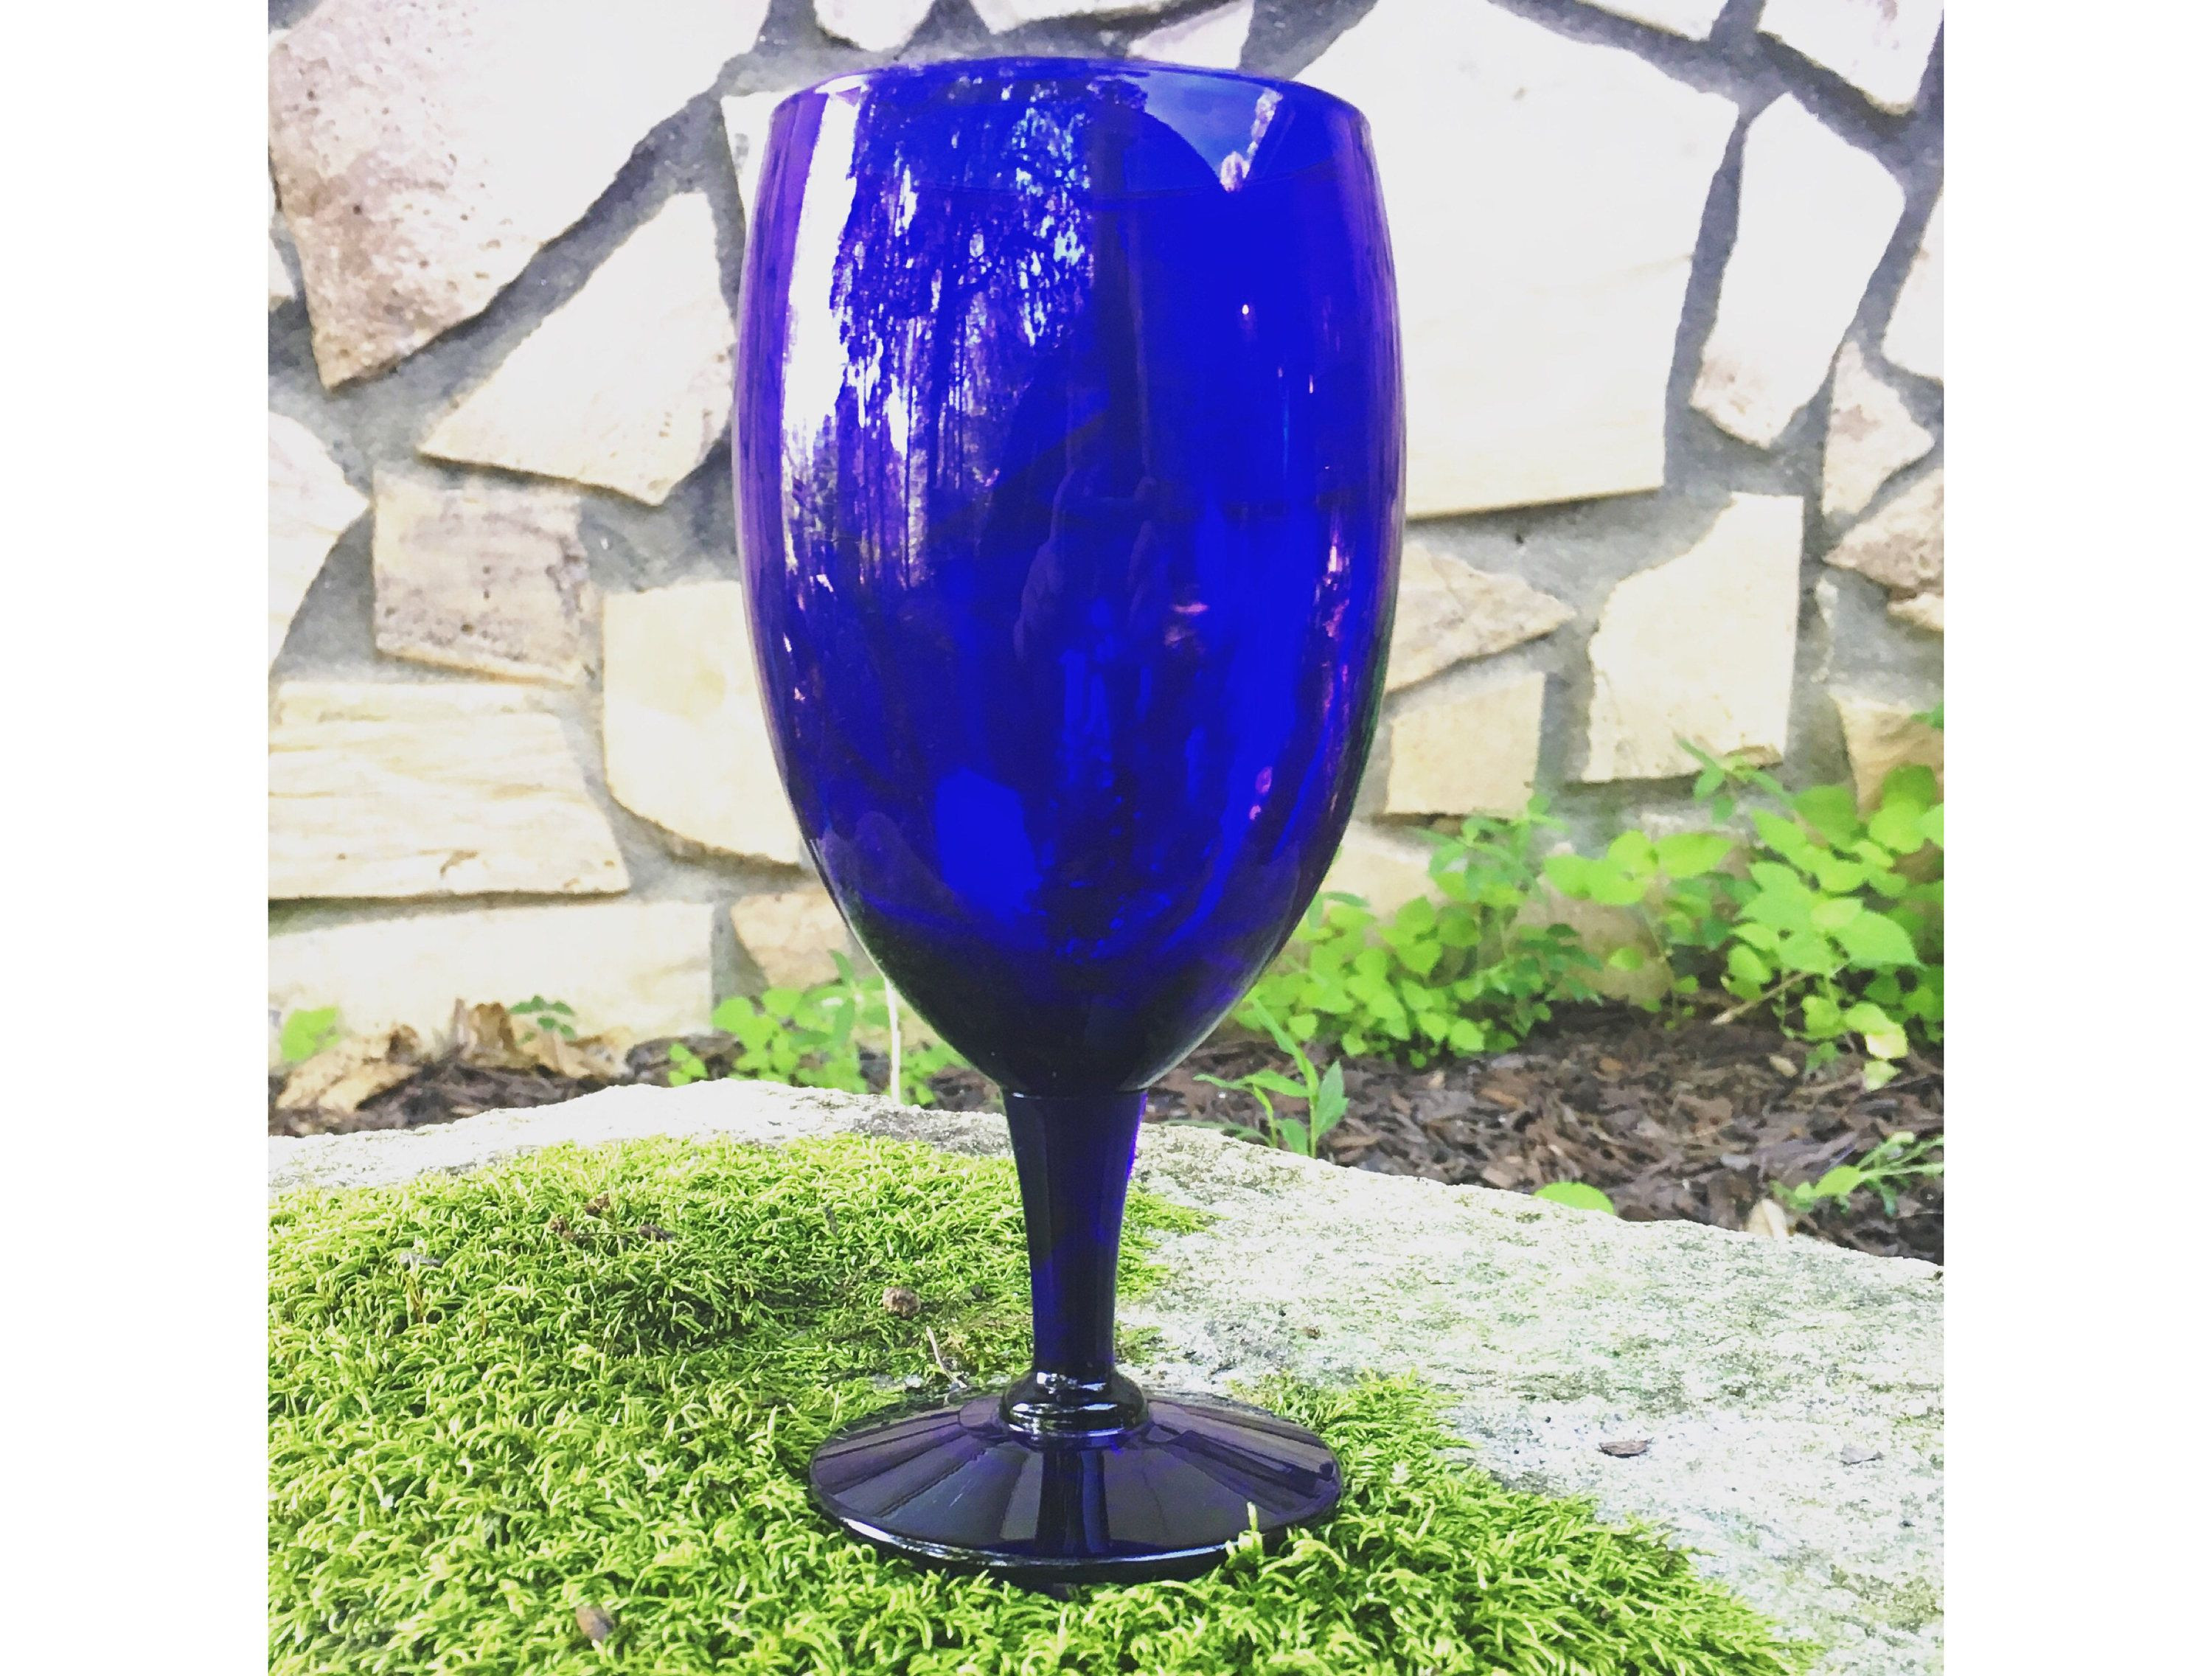 murano glass tall vase of cobalt blue glass vase awesome cobalt blue wine glass altar chalice inside cobalt blue glass vase awesome cobalt blue wine glass altar chalice altar decor vintage